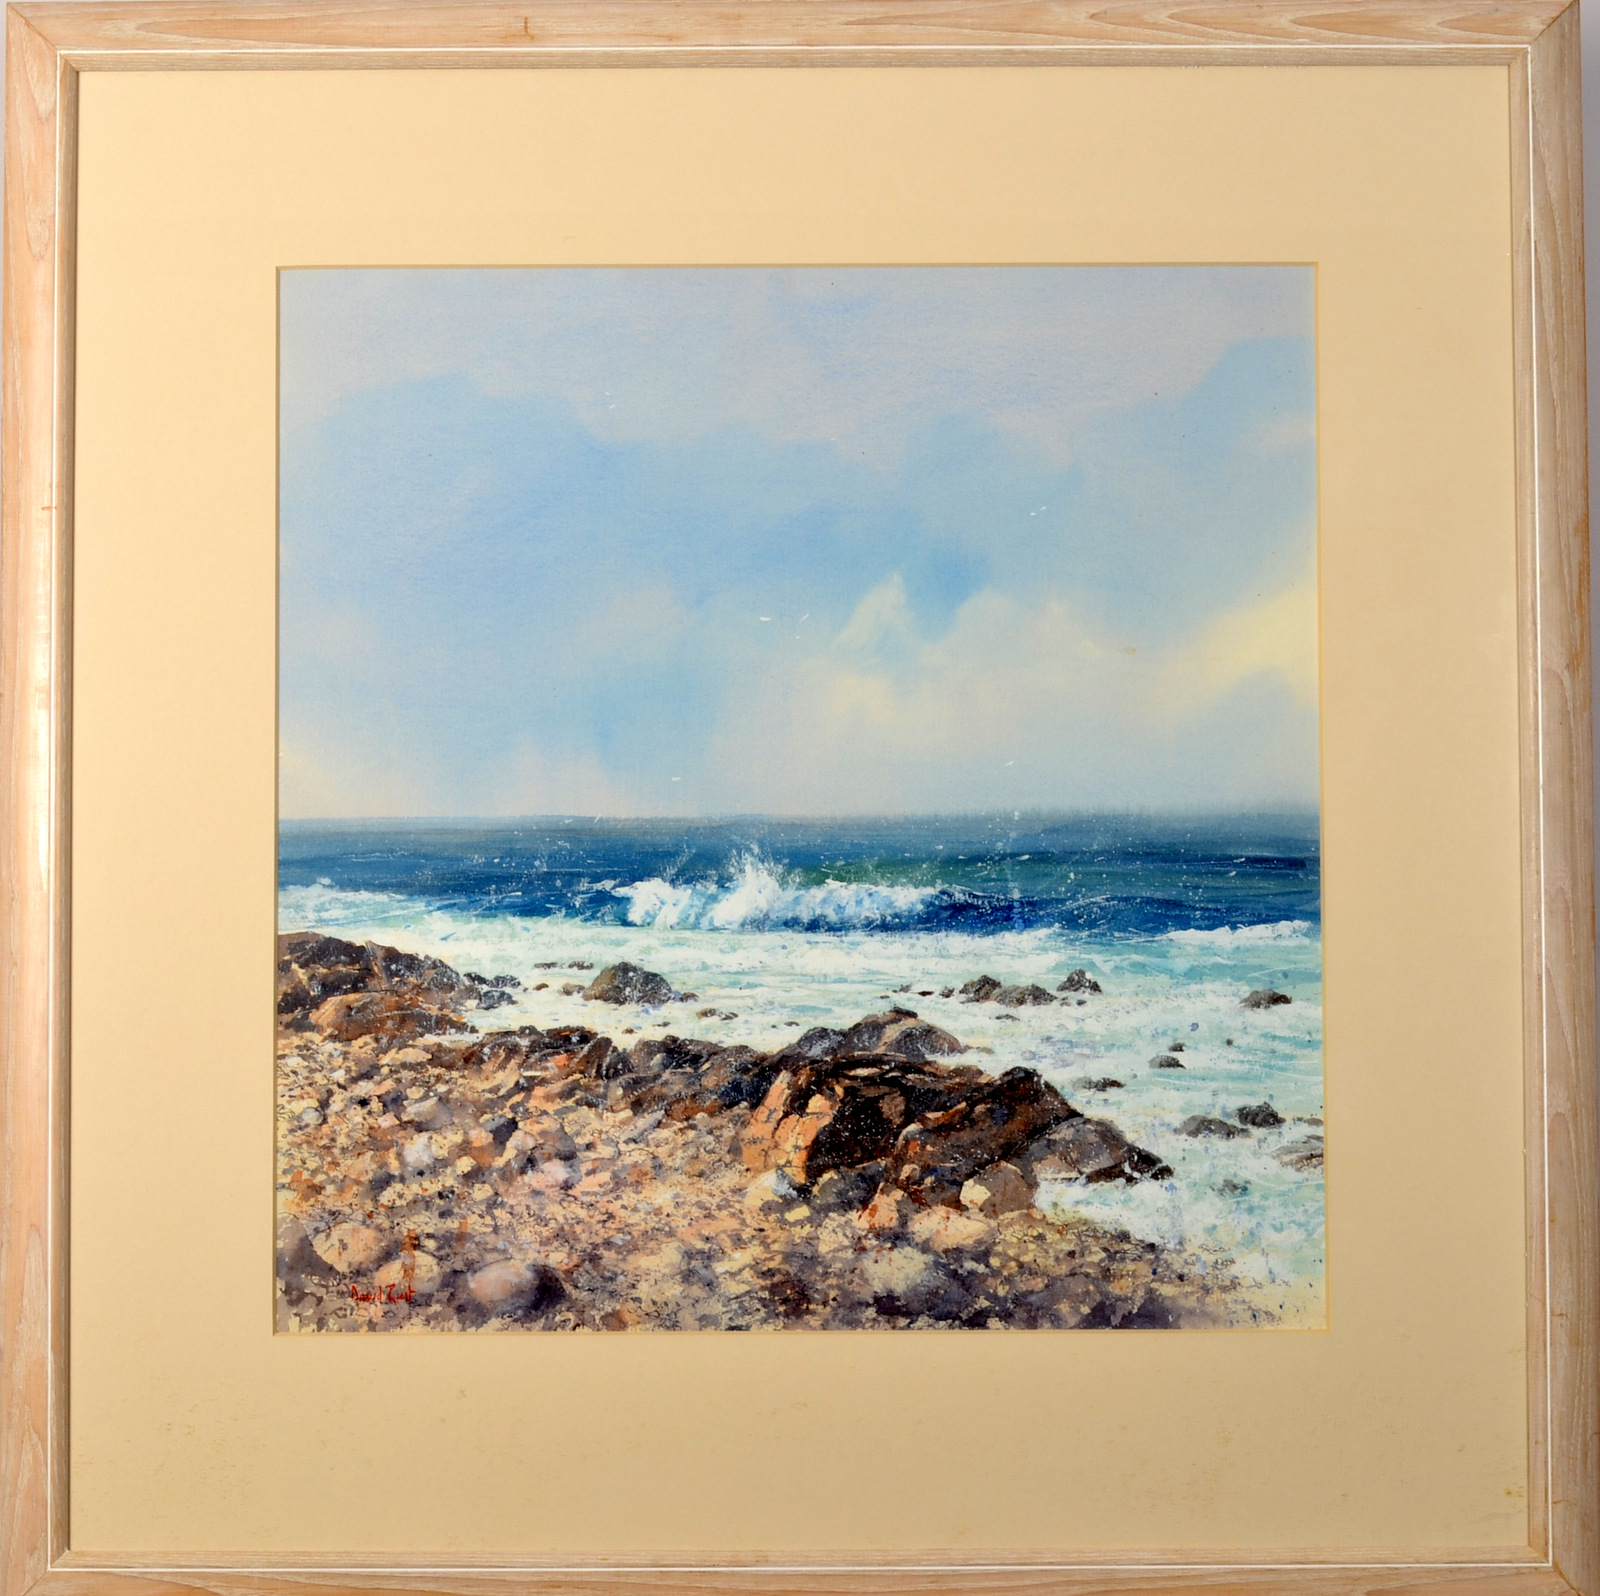 Lot 2 - DAVID RUST Incoming Wave Watercolour Signed 57 x 57cm